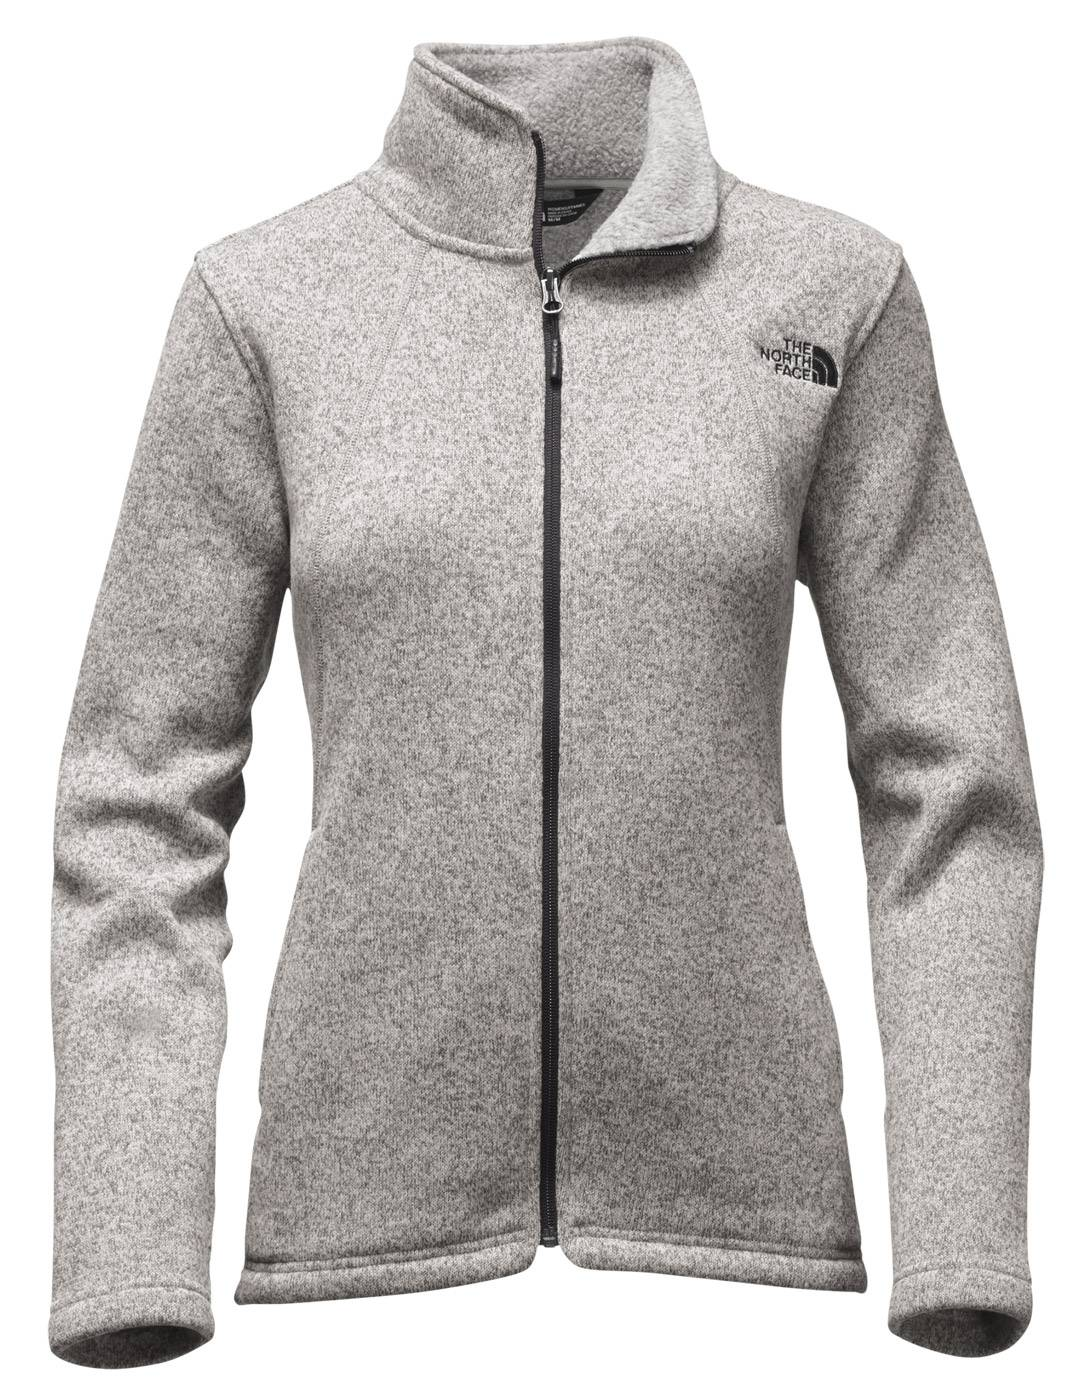 8aba9b589 The North Face Custom Women's Crescent Full Zip Jacket